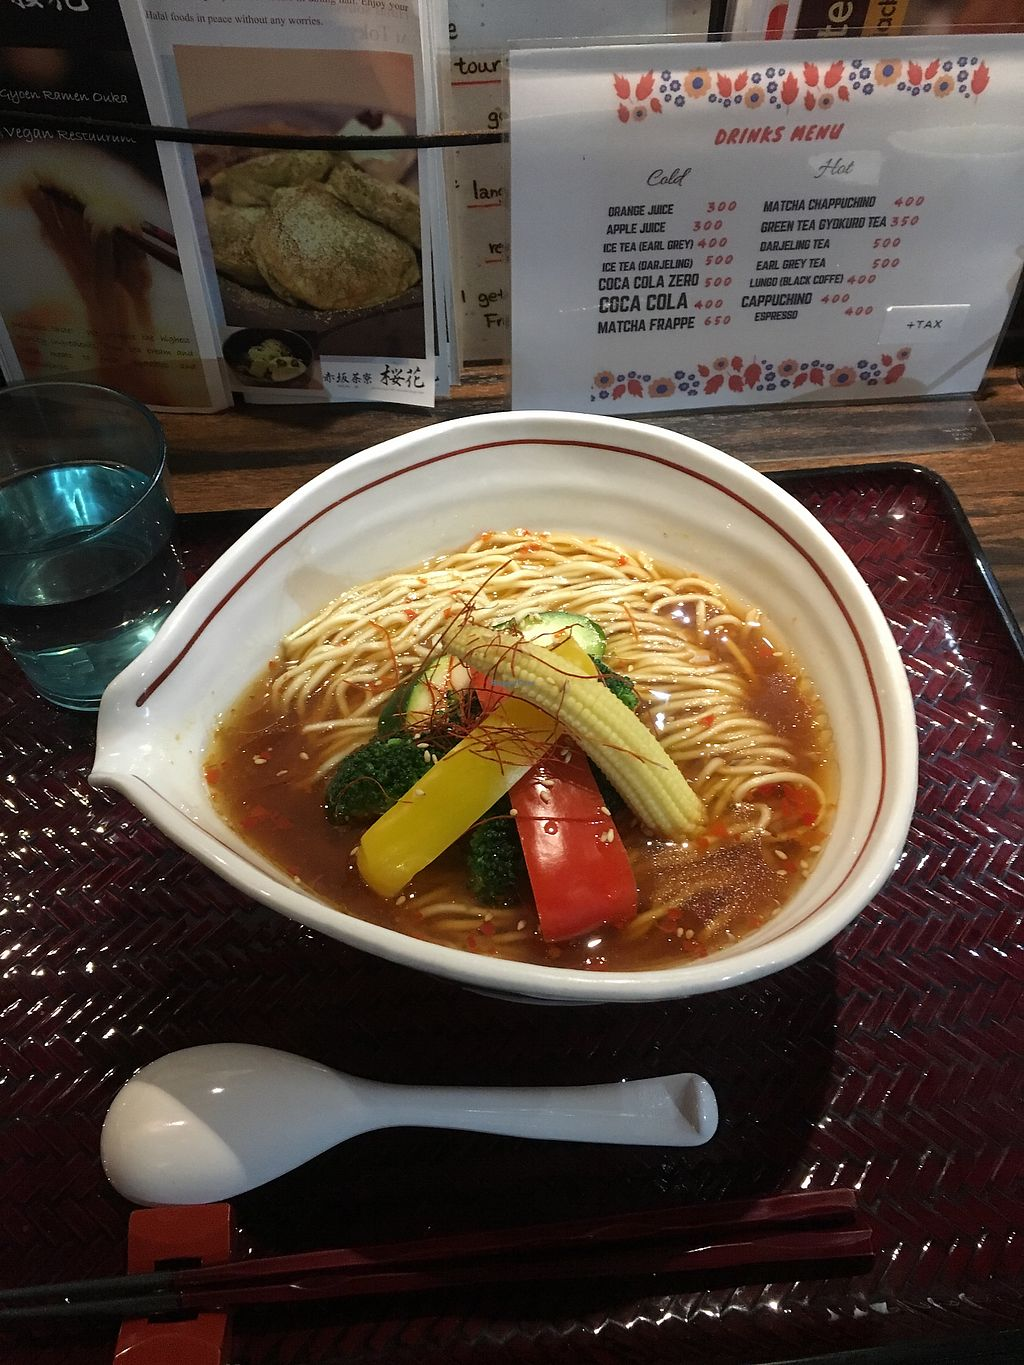 """Photo of Shinjukugyoen Ramen Ouka  by <a href=""""/members/profile/itypewithmyhands"""">itypewithmyhands</a> <br/>Spicy vegan ramen bowl <br/> February 7, 2018  - <a href='/contact/abuse/image/106357/355966'>Report</a>"""